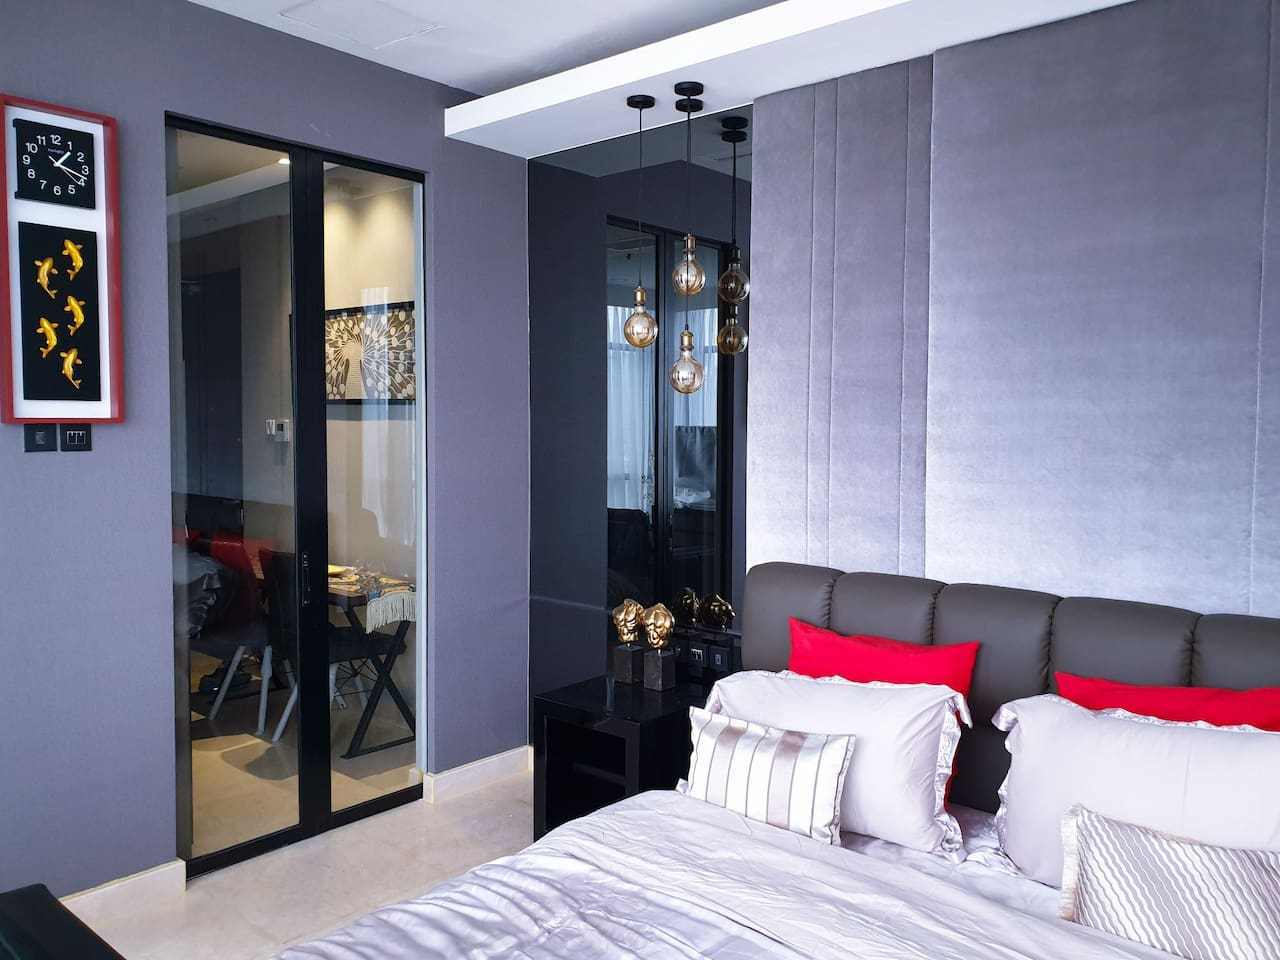 bedroom (king size) with luxury design